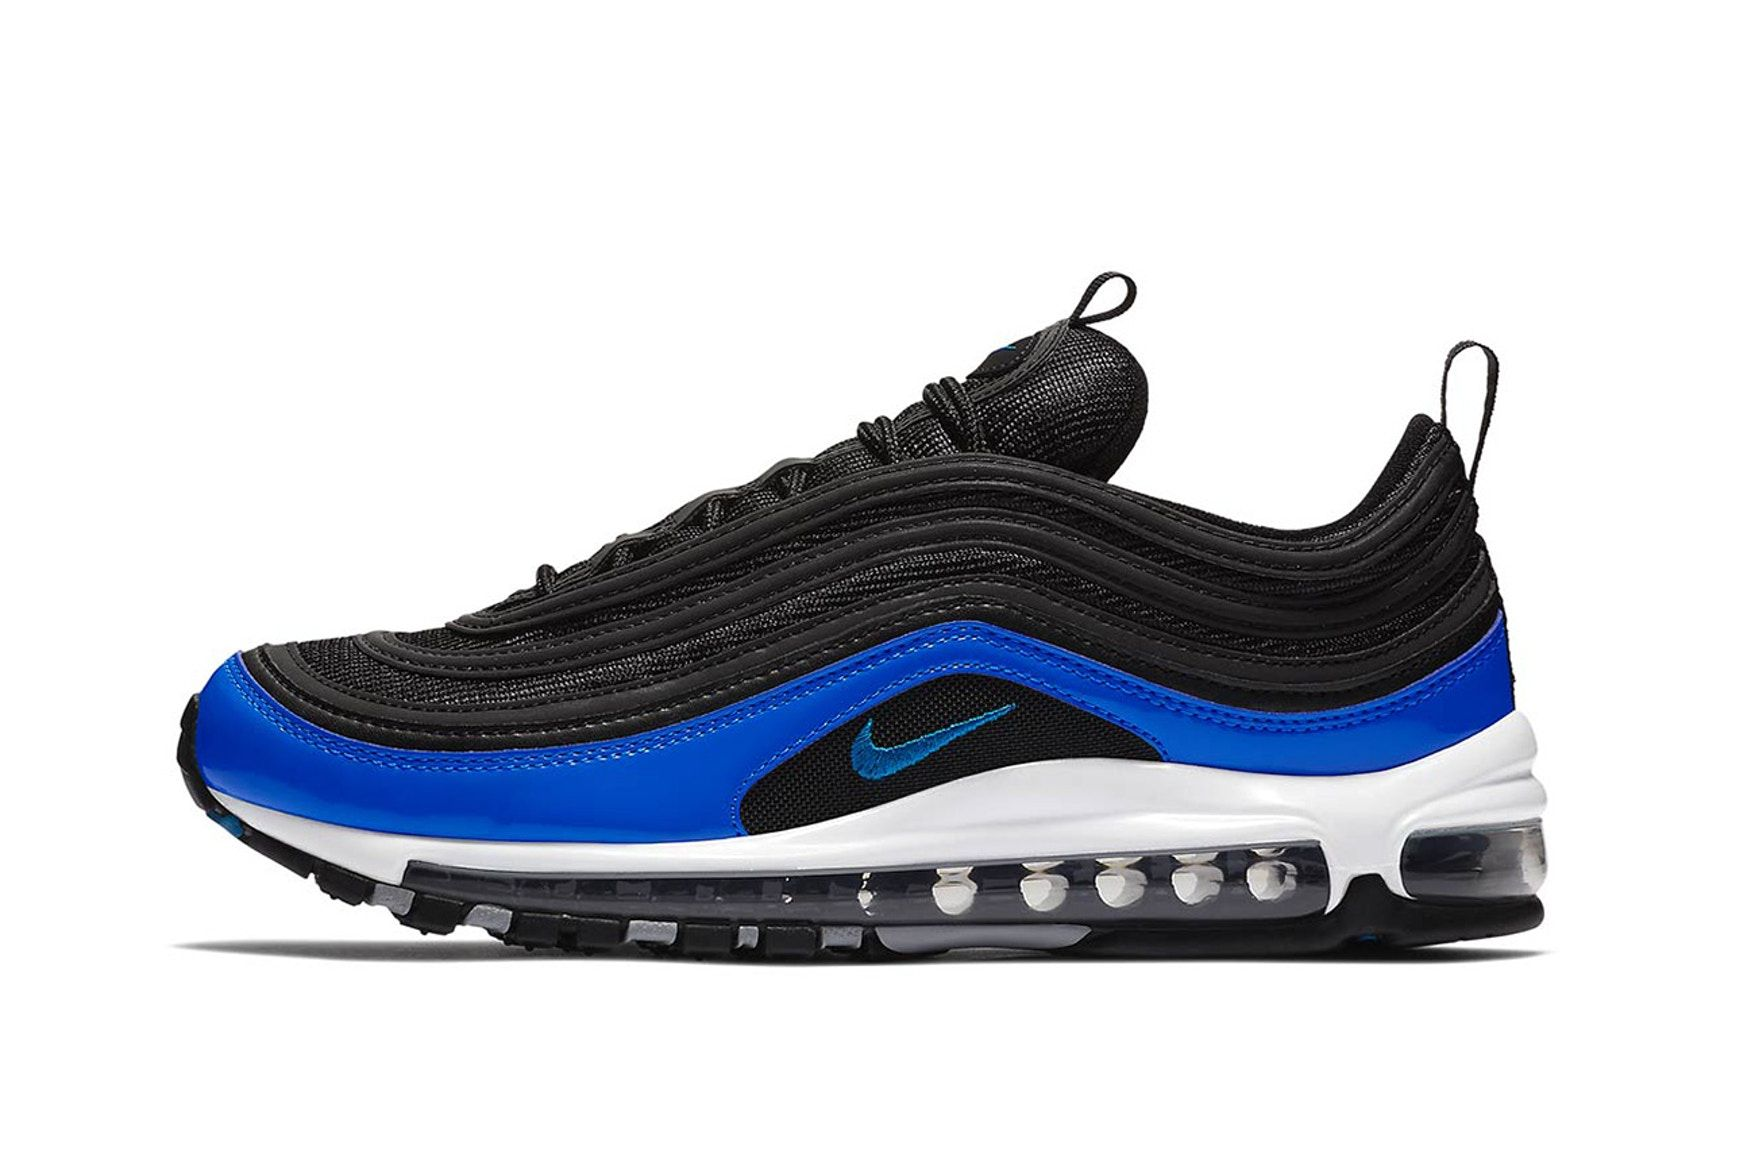 low priced 051a2 89e0a Nike's Air Max 97 Launches in